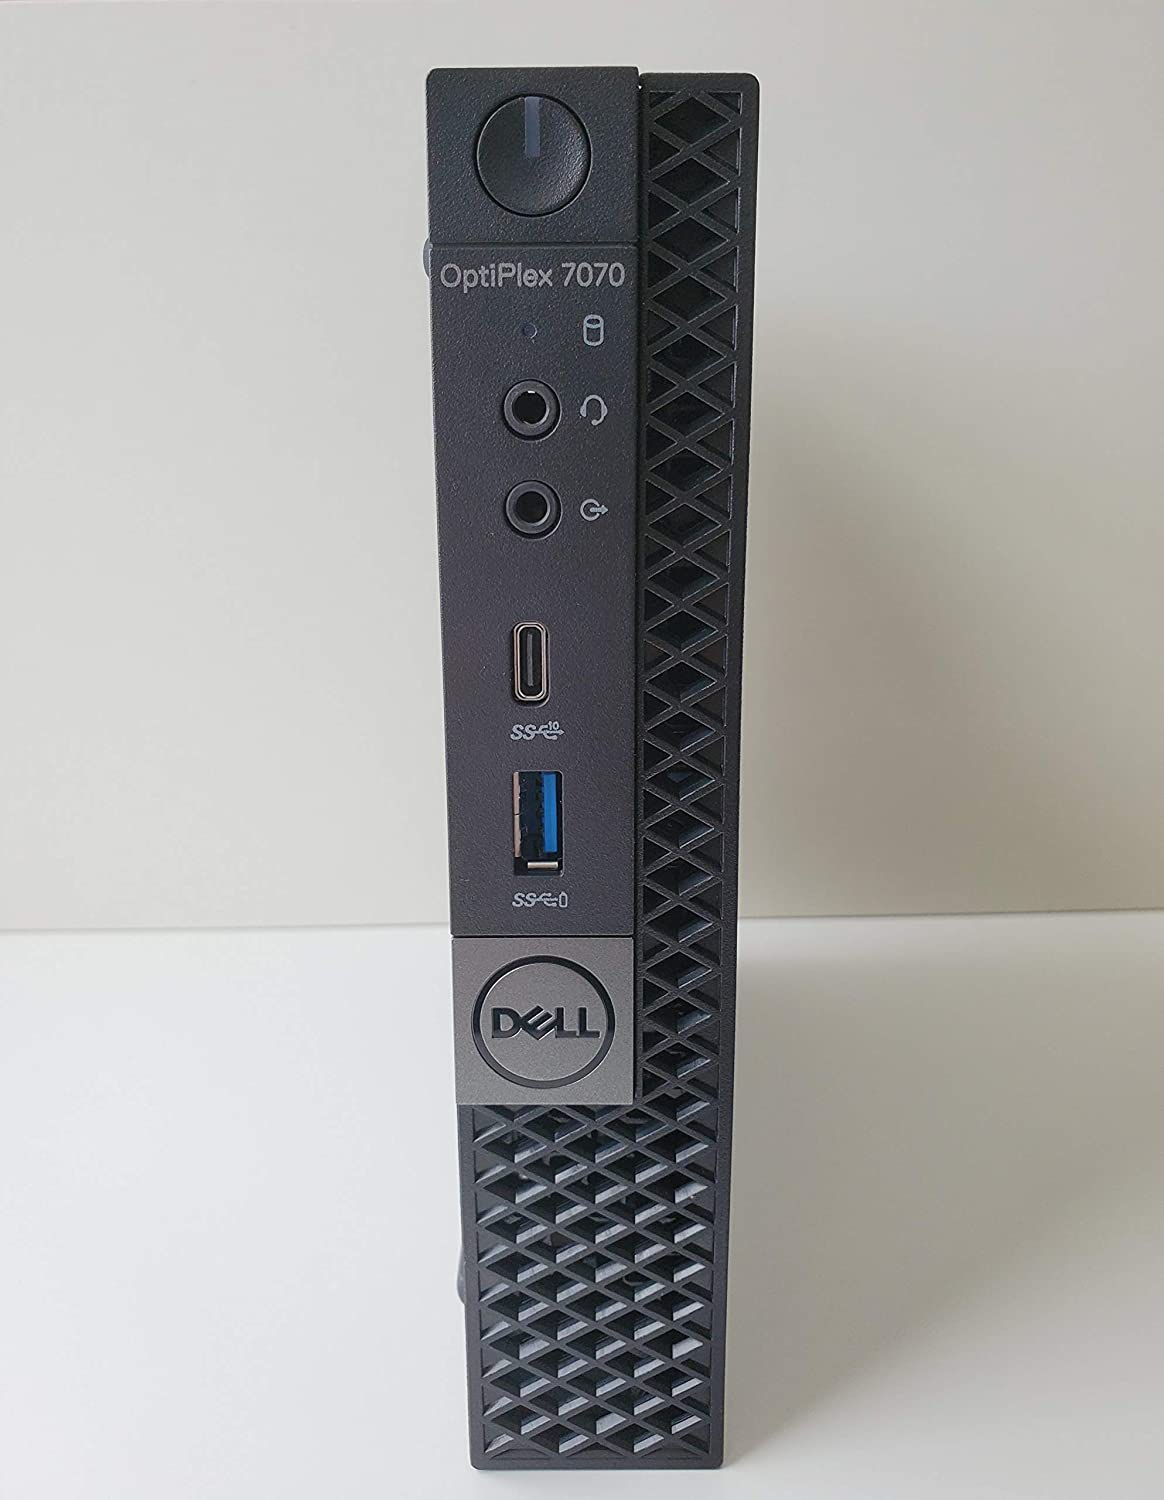 Dell Optiplex 7070 Micro (MFF) PC Intel Core i7-9700 3.0GHZ 8GB 2666MHZ RAM 256GB M.2 PCIe SSD AC WiFi Windows 10 Pro (Renewed)